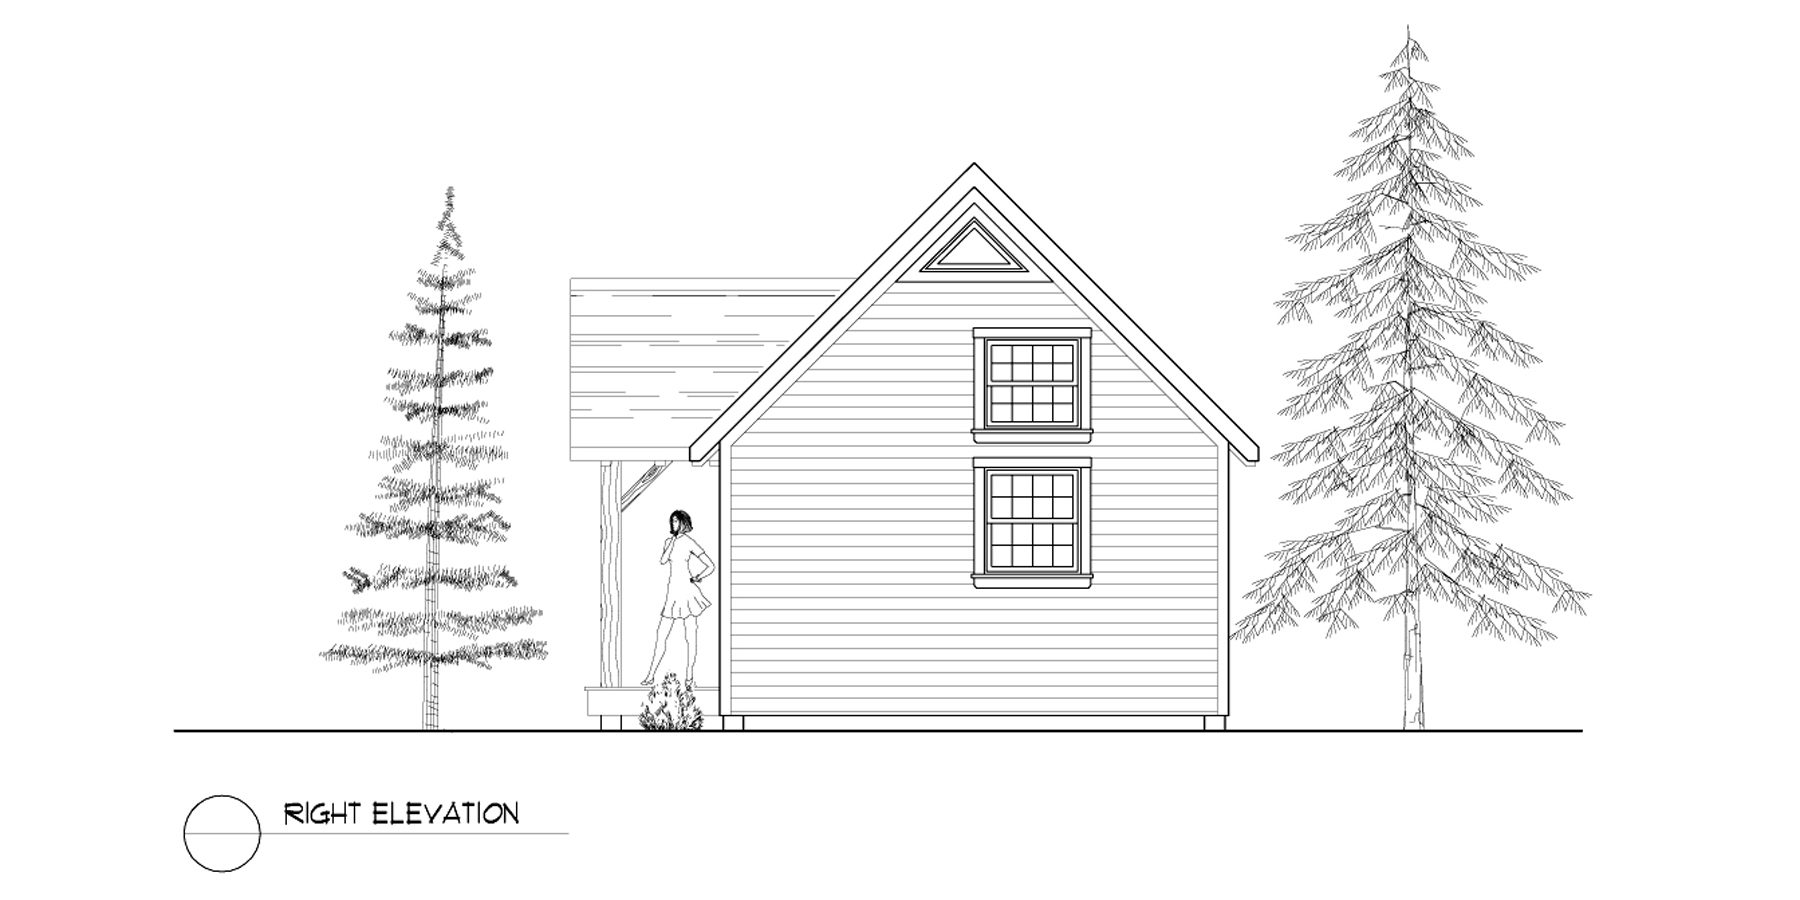 Normerica Timber Frames, House Plan, The Dillon 2254, Right Elevation